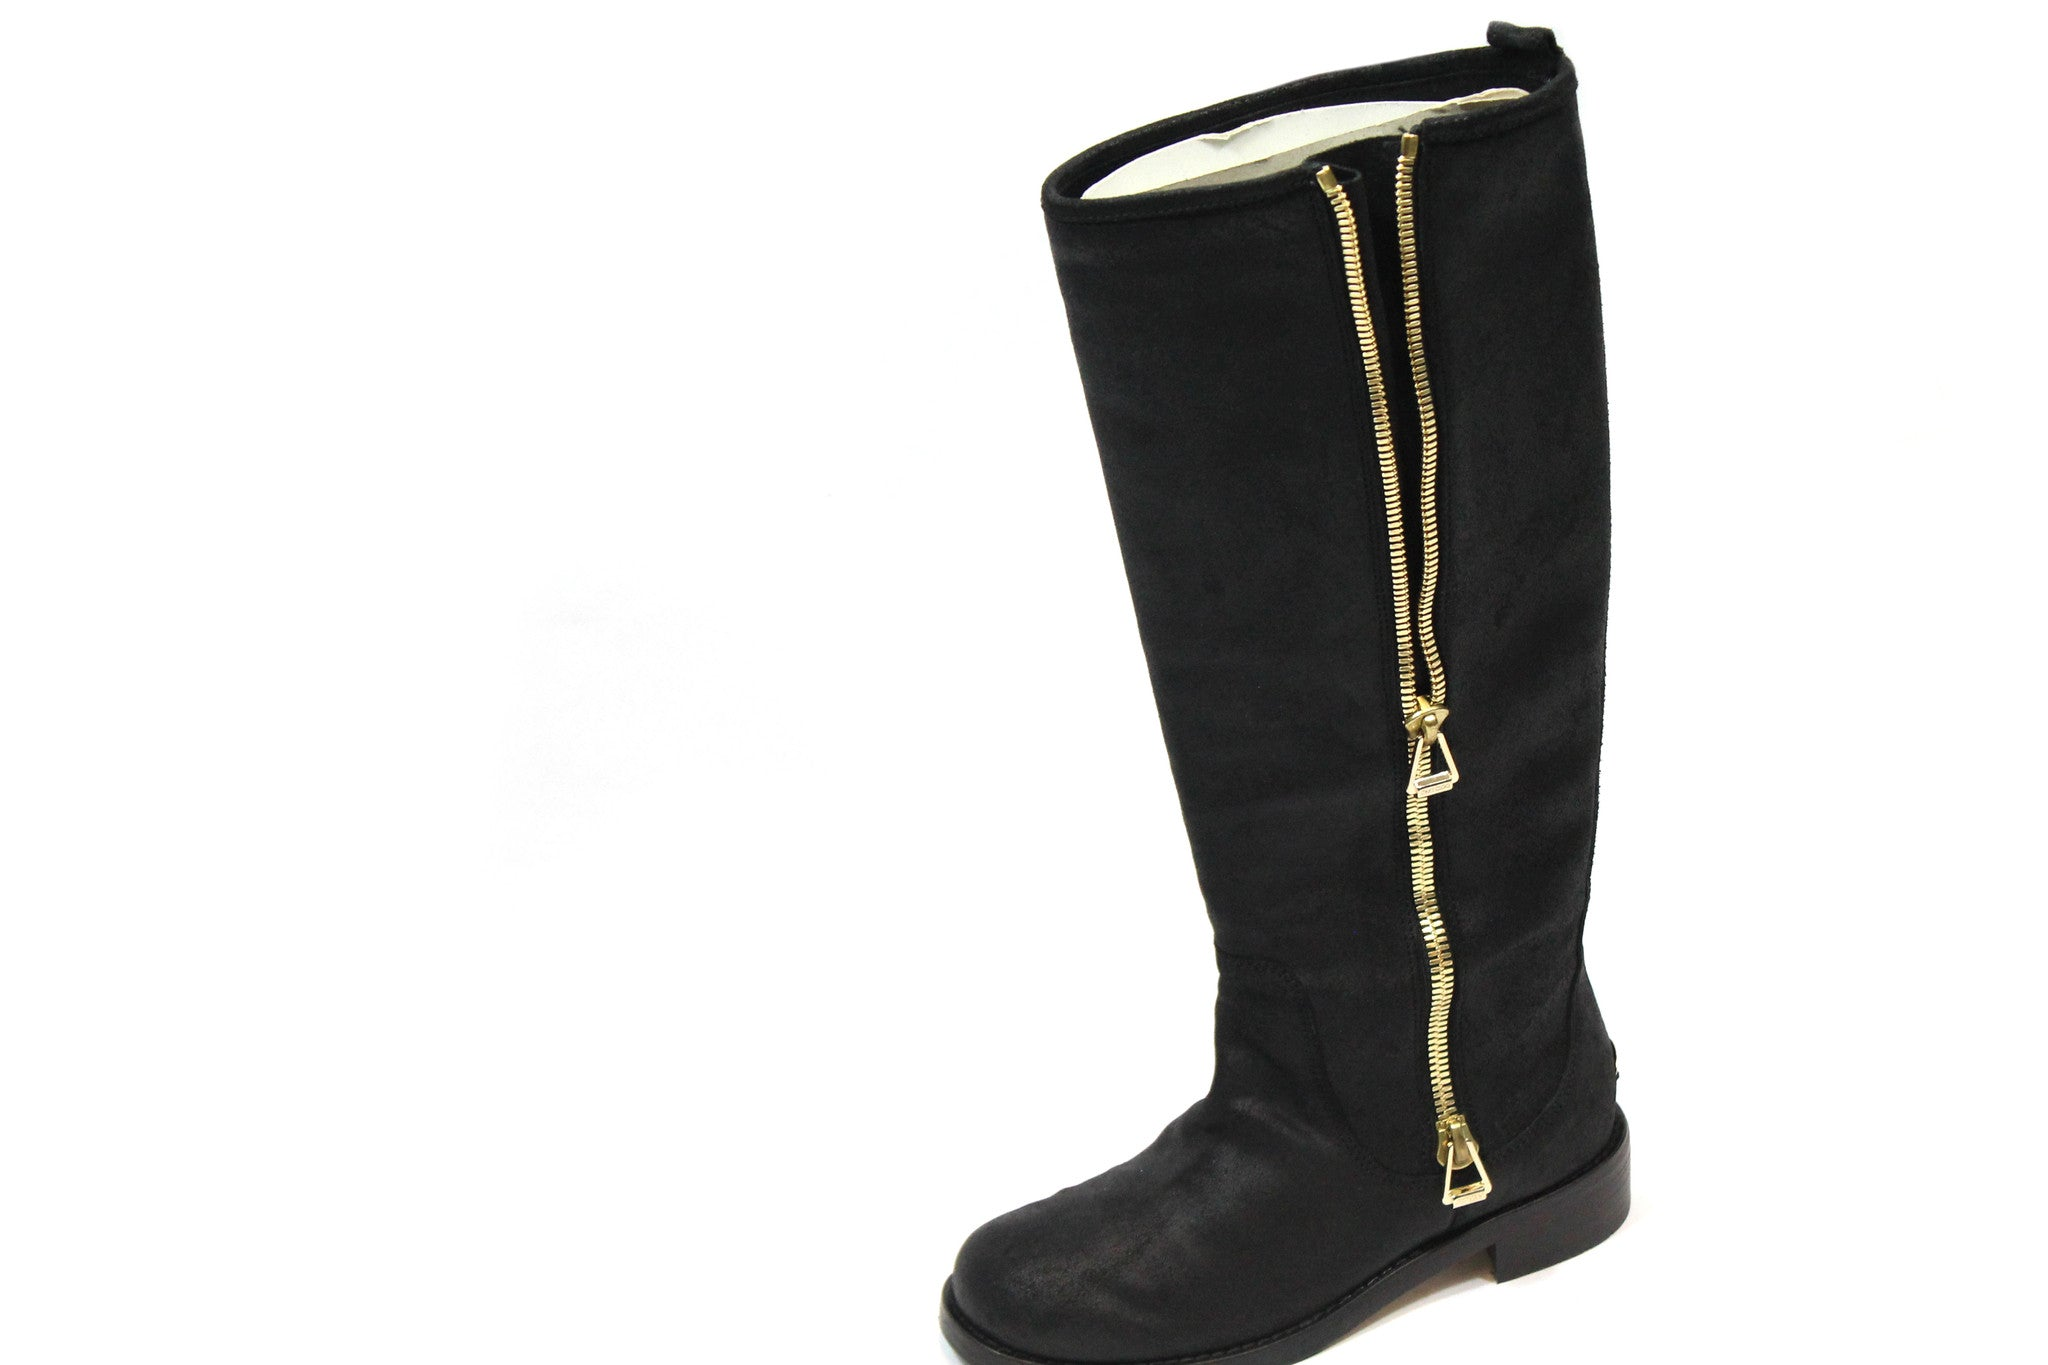 Jimmy Choo Suede 'Doreen' Zip Knee-High Flat Boots (Size 35) - Encore Consignment - 4